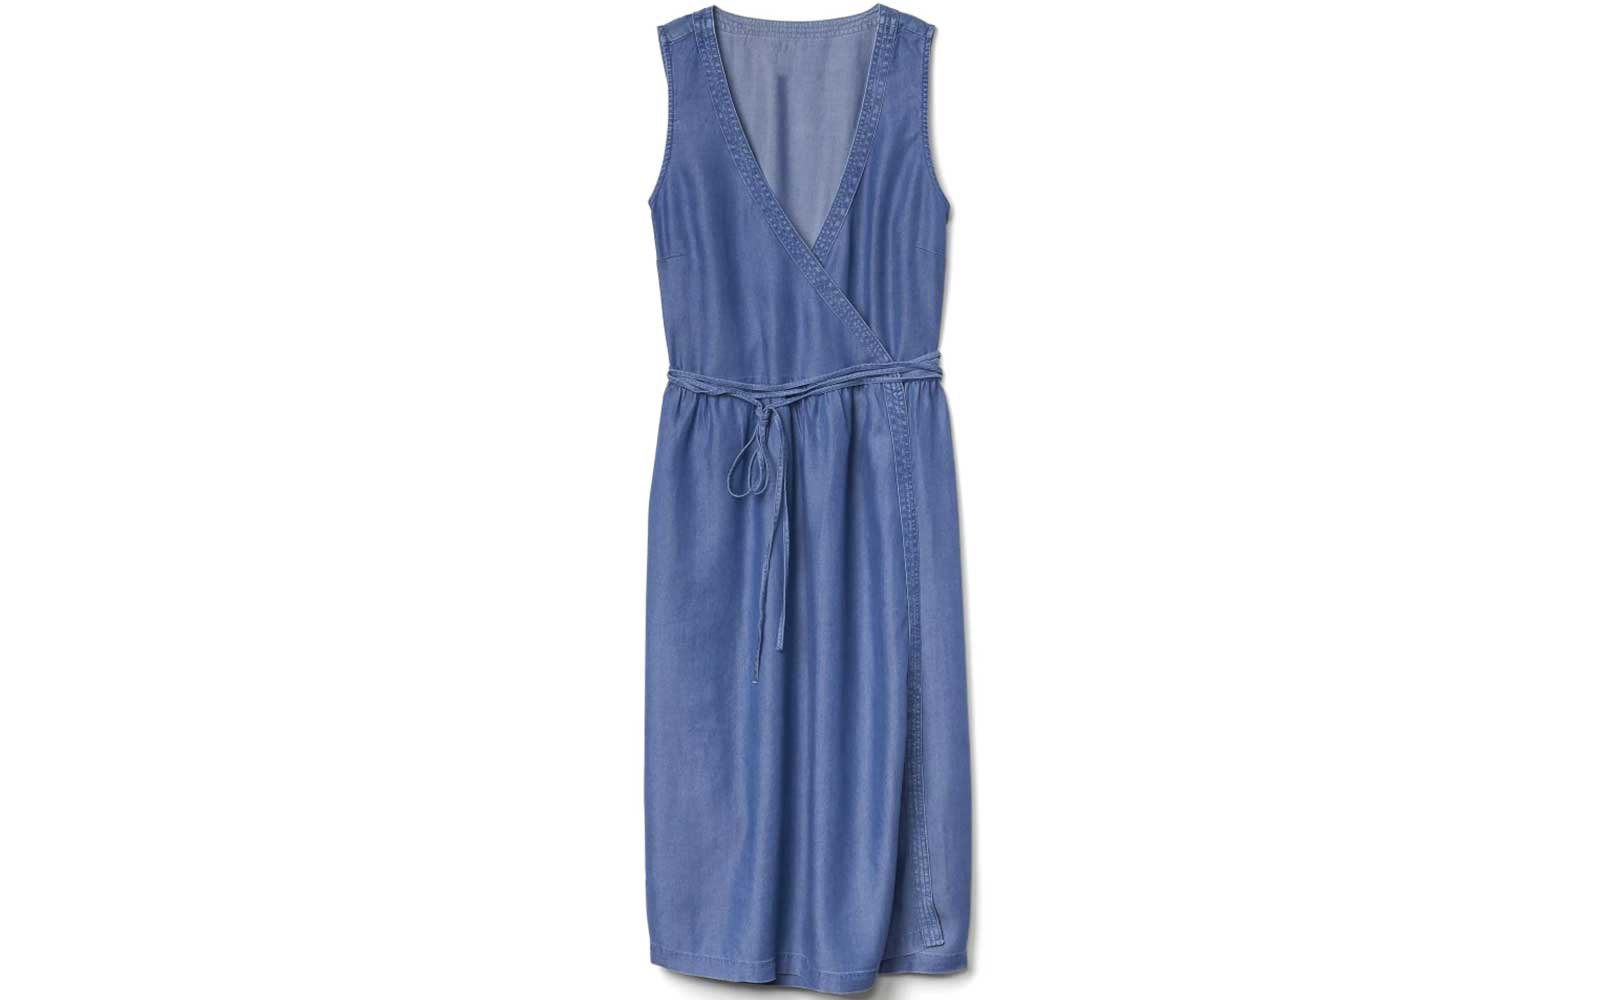 Gap Denim Wrap Dress